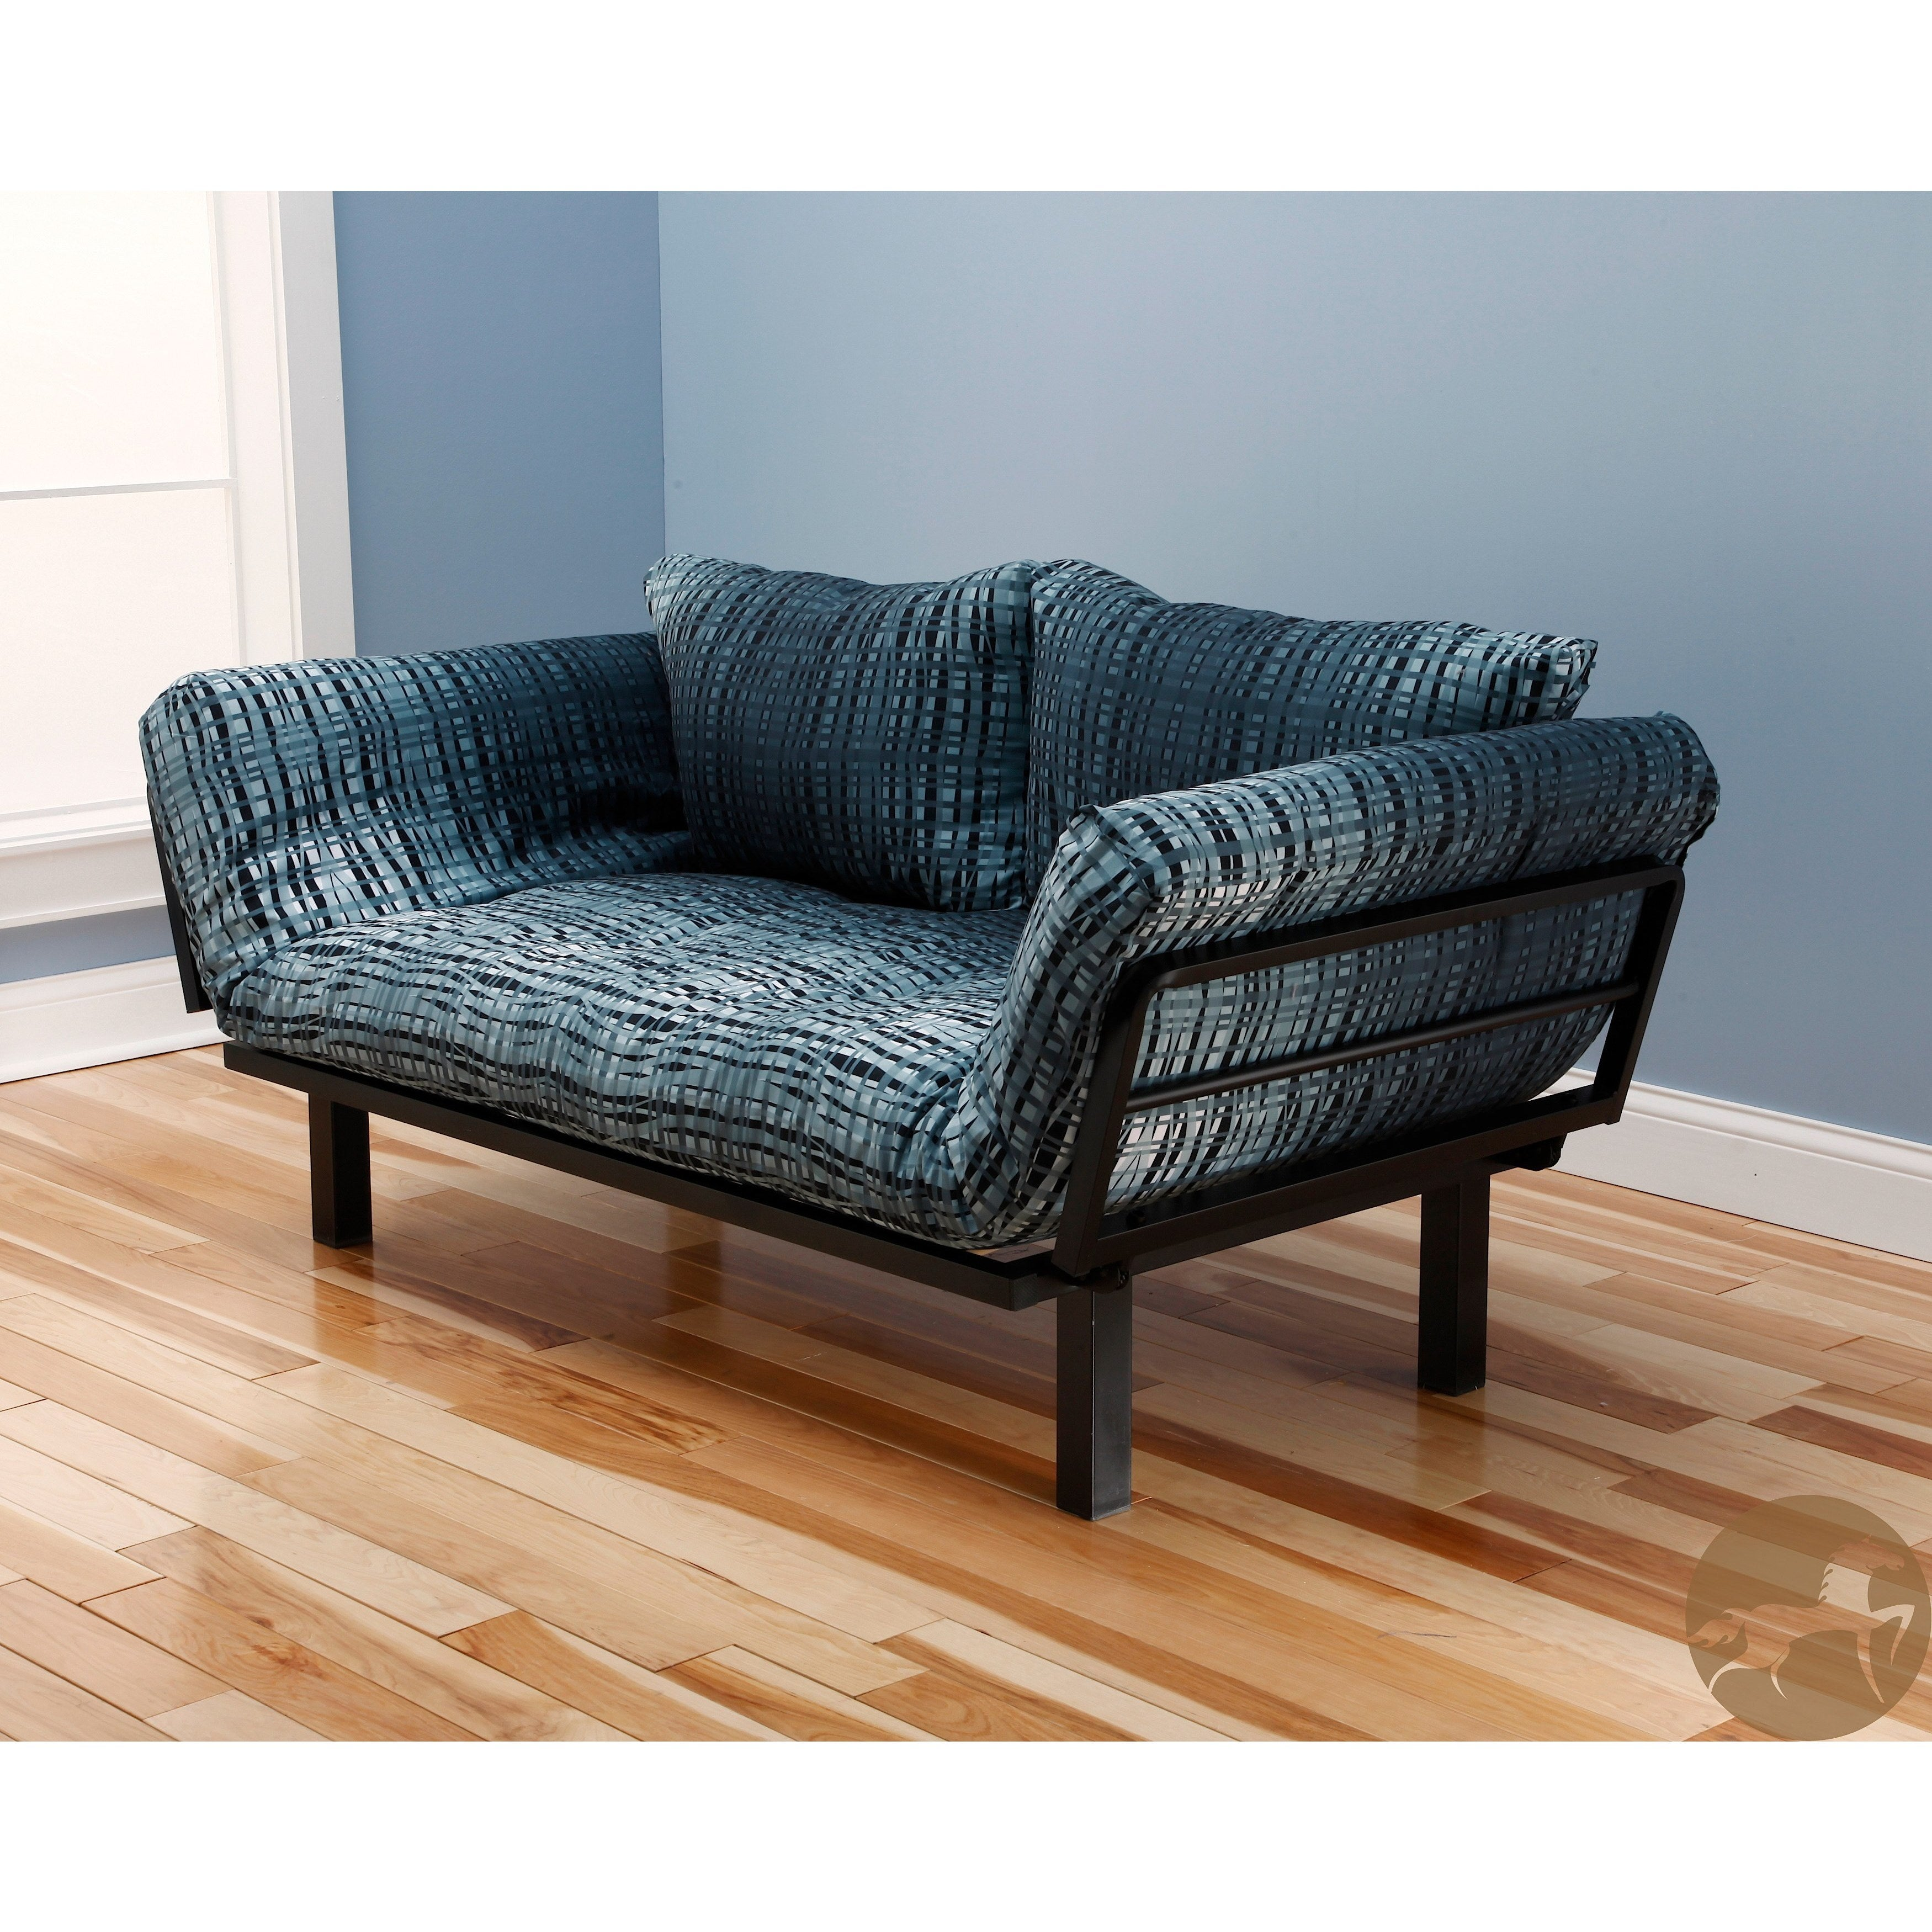 Christopher Knight Home Multi Flex Black Metal Daybed Lounger with